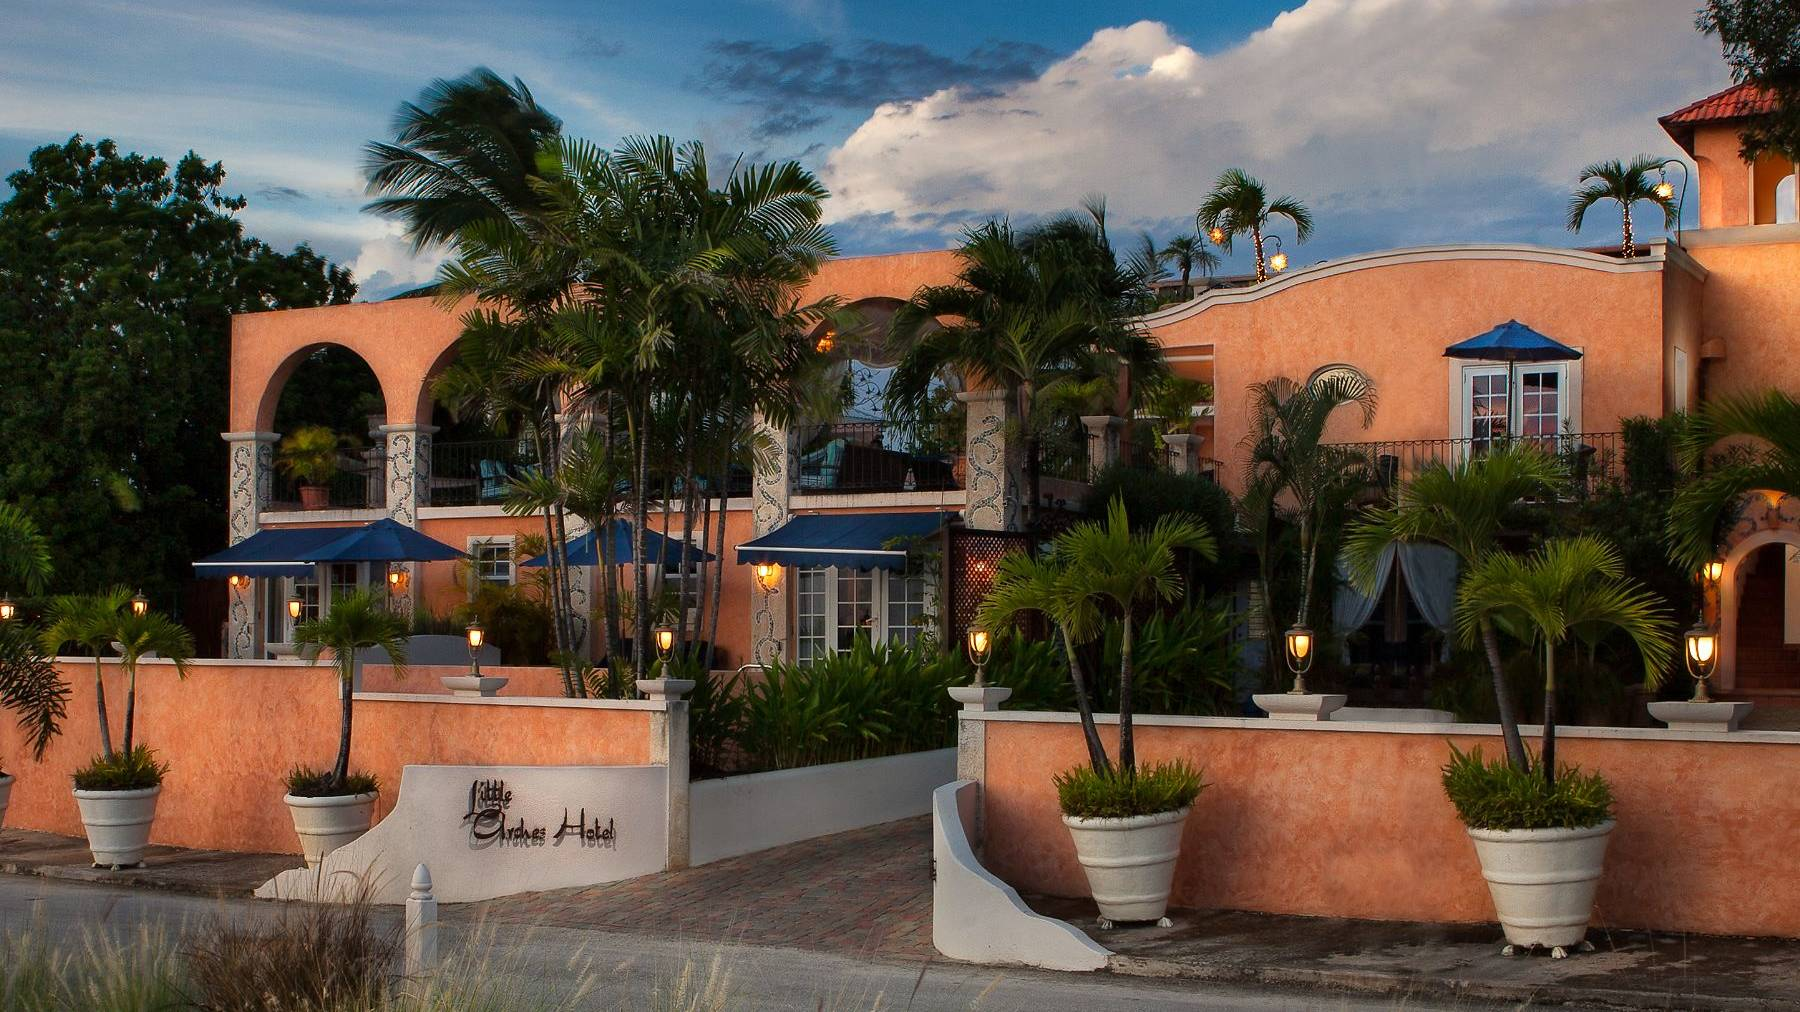 little-arches-boutique-hotel-barbados-images-27.jpeg